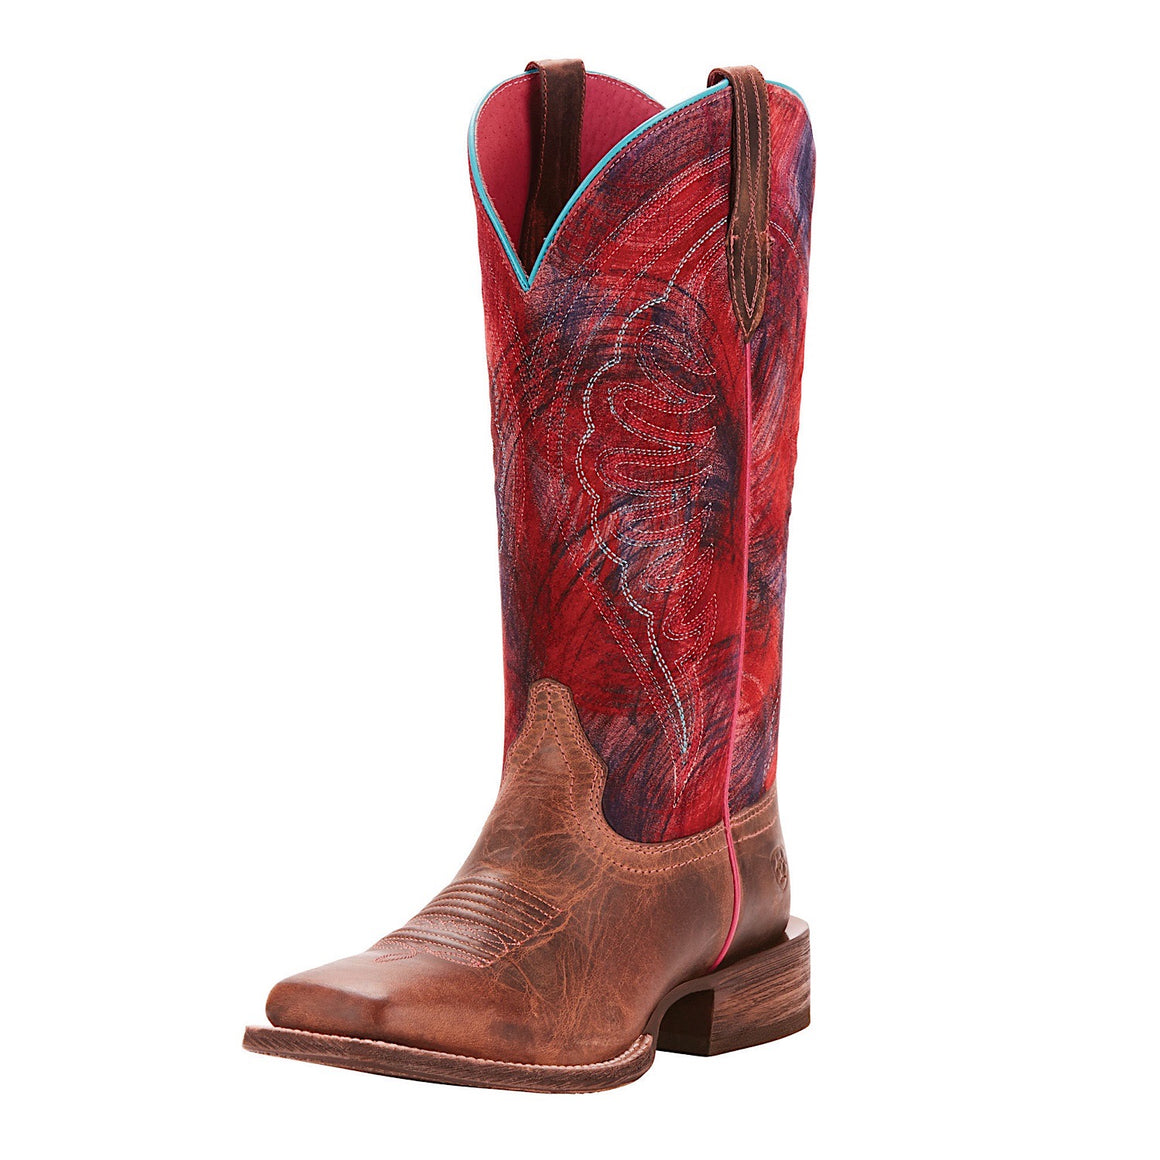 Ariat Womens Circuit Shiloh Weathered Tan/Paint